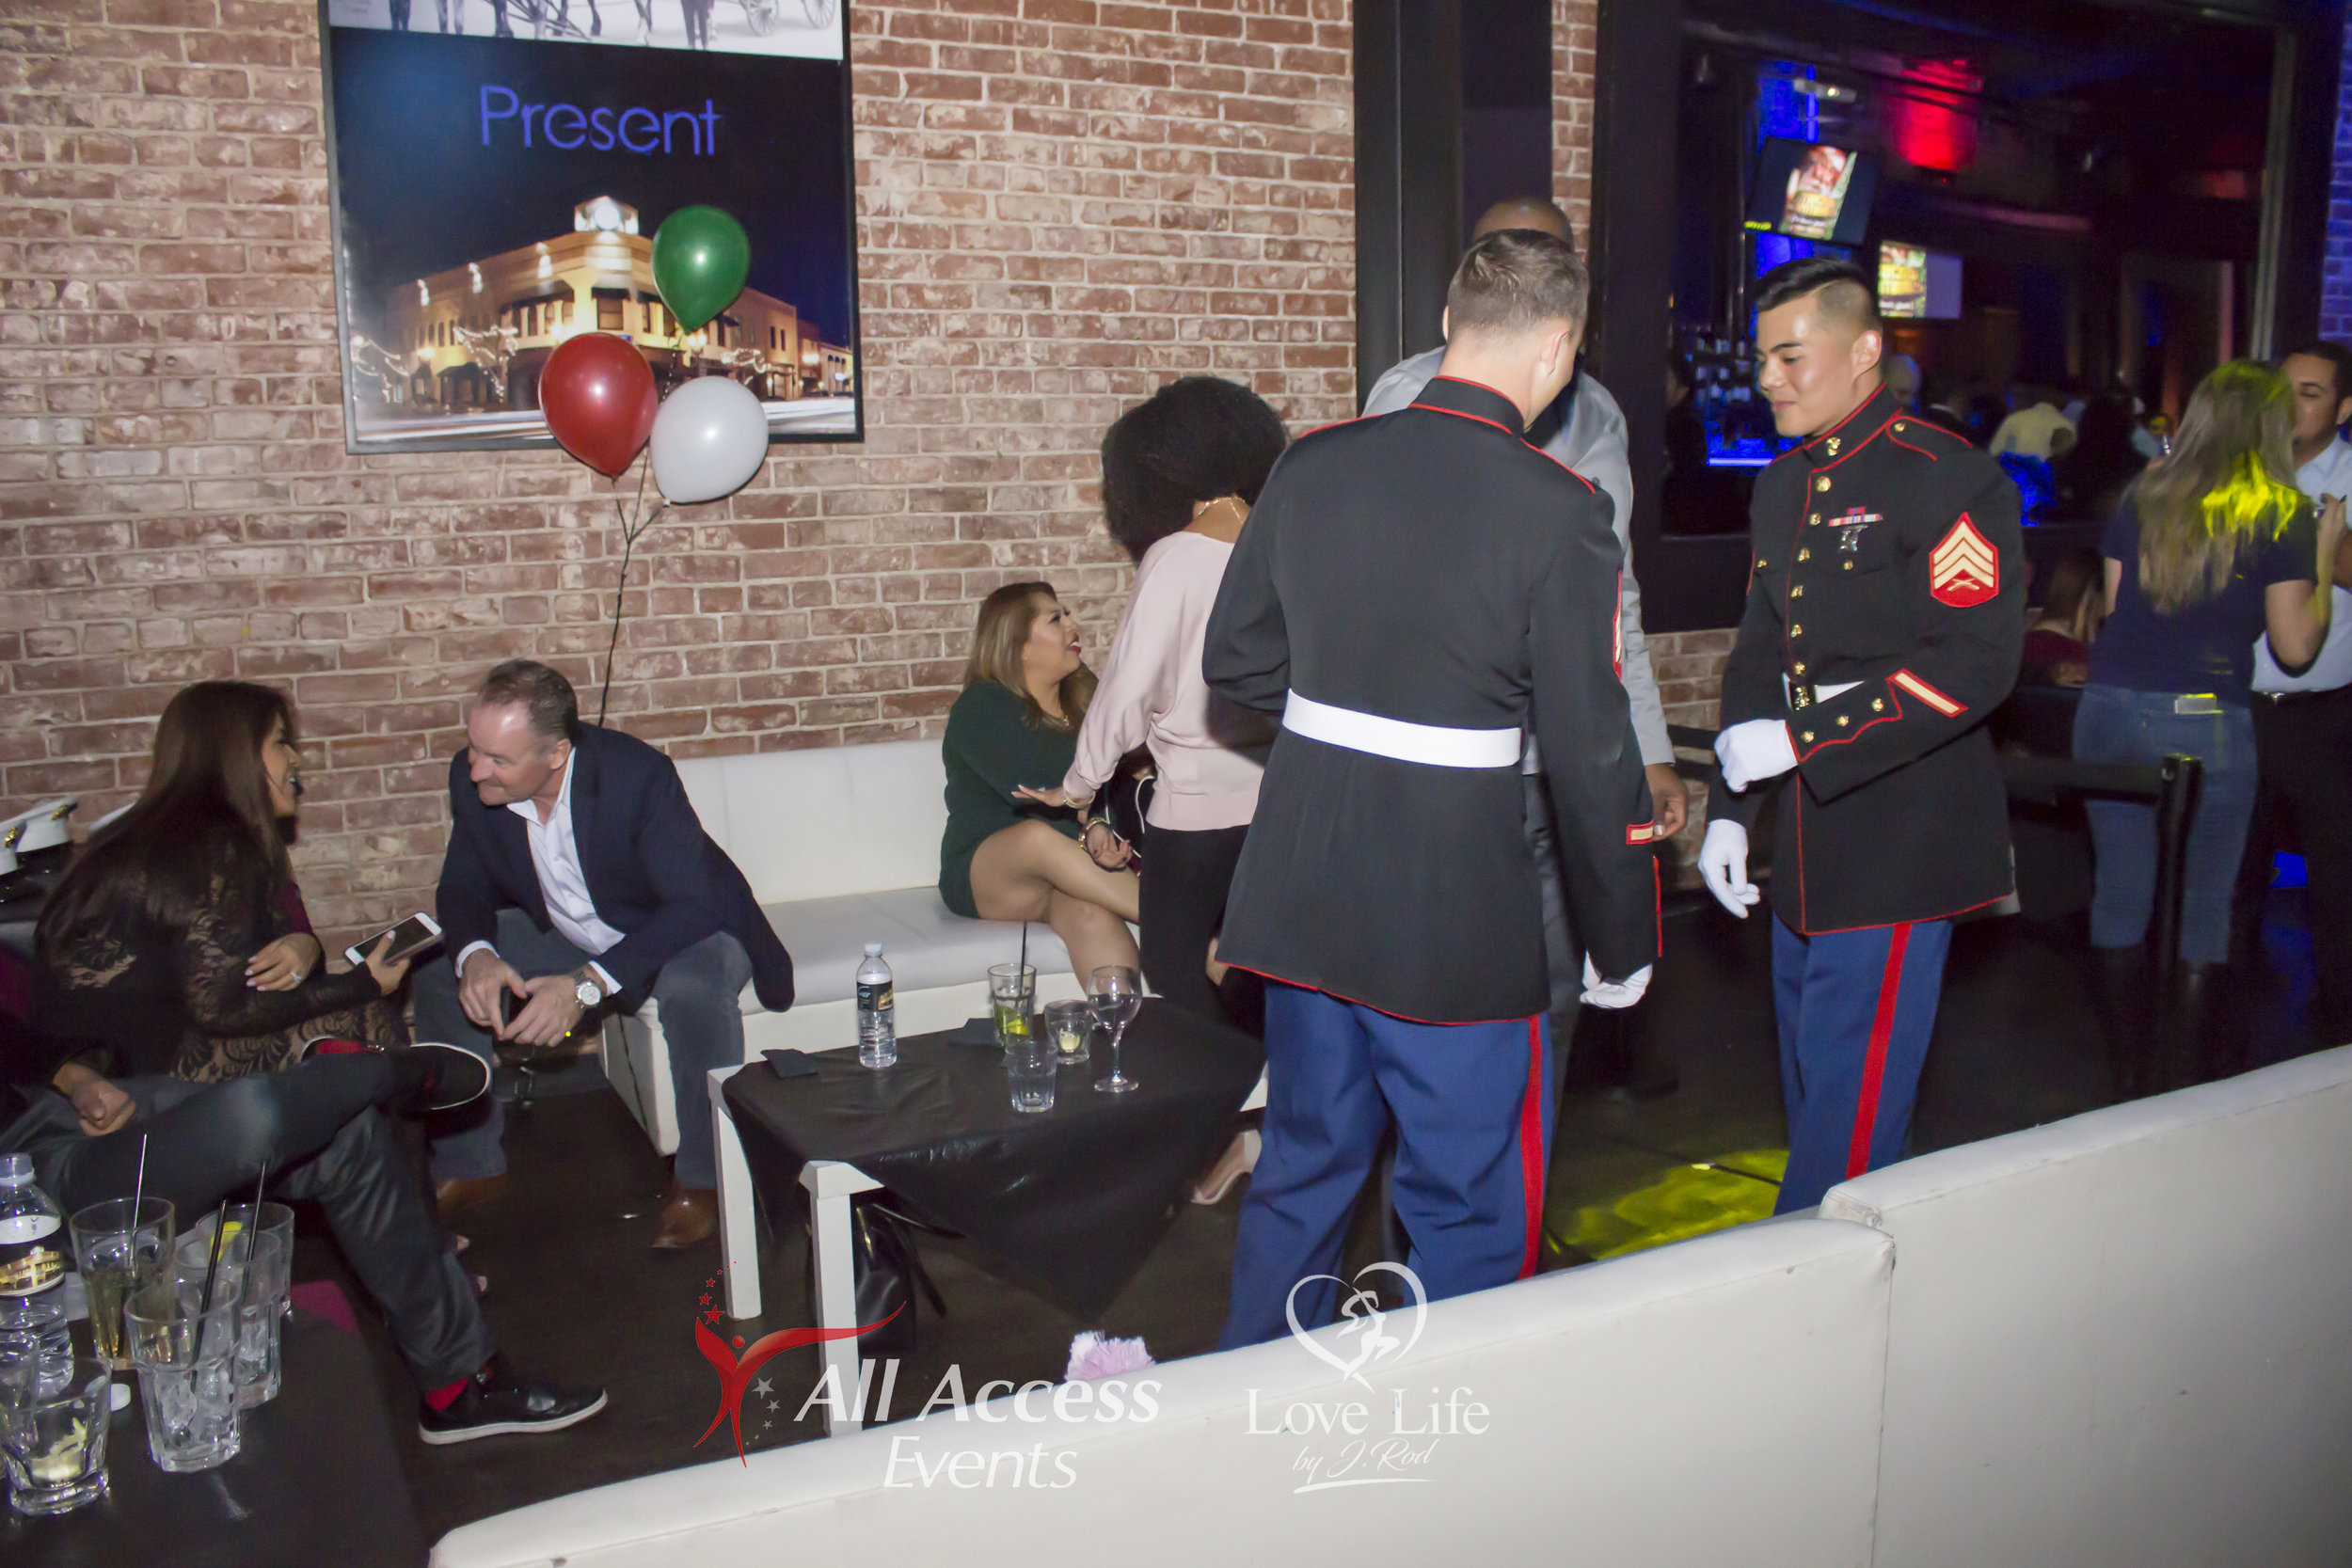 All Access Events Toy Drive - 12-13-17_68.jpg